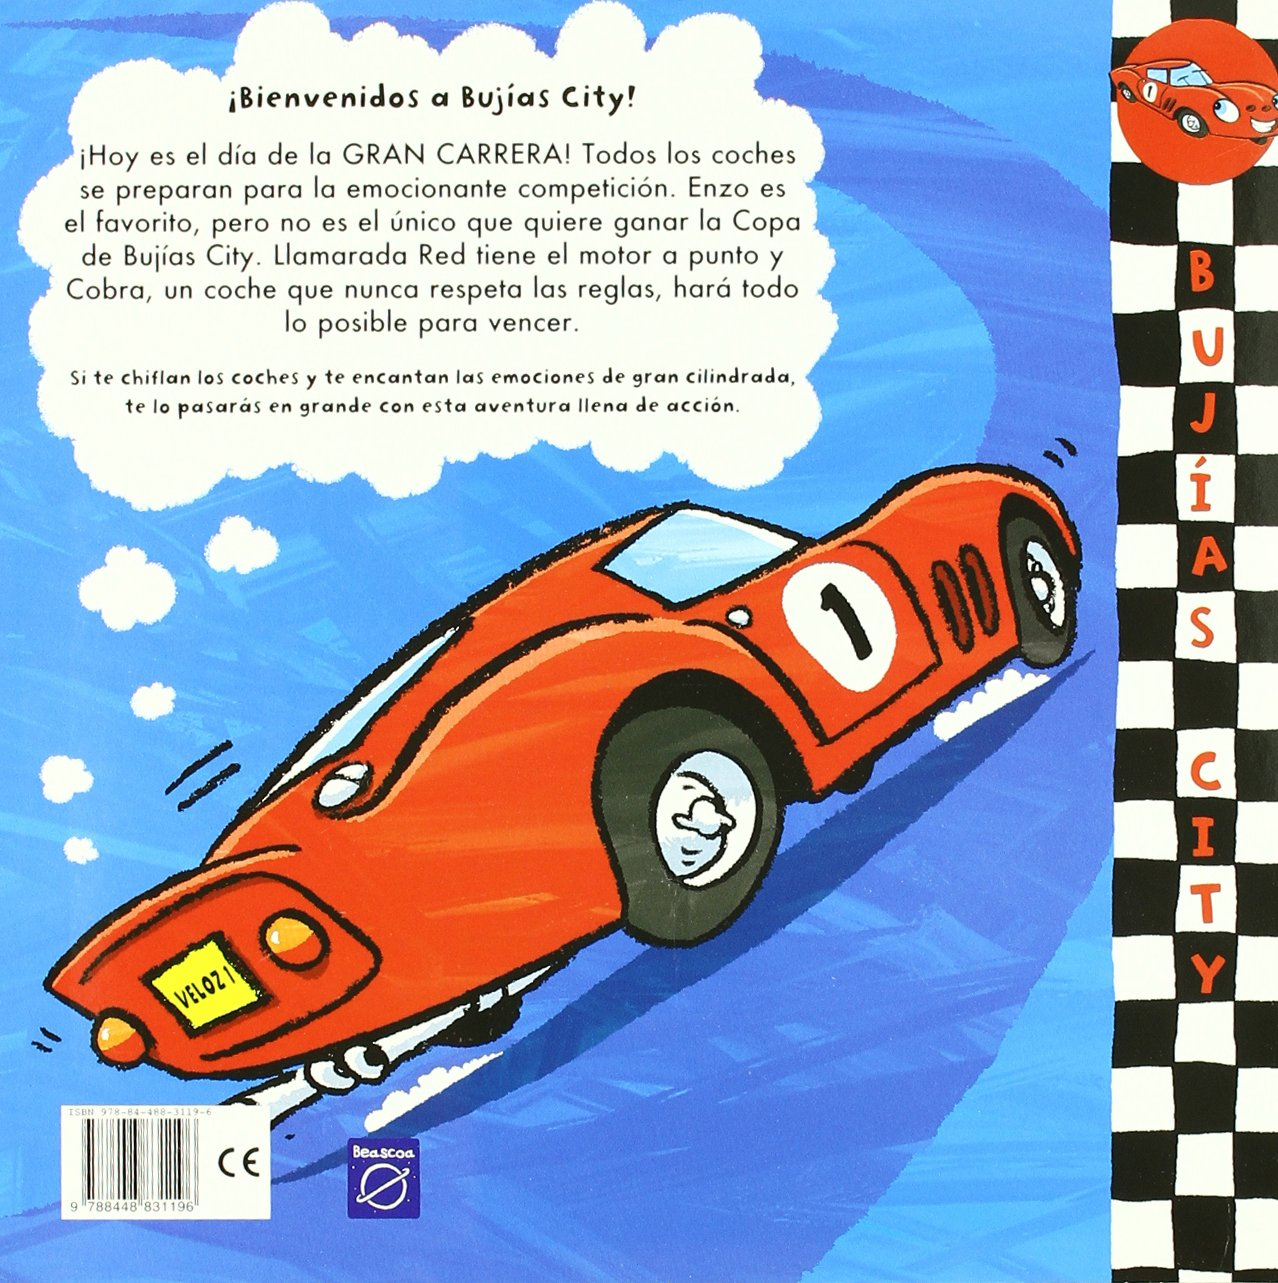 Enzo, el coche de carreras: Diane Fox / Christyan Fox: 9788448831196: Amazon.com: Books